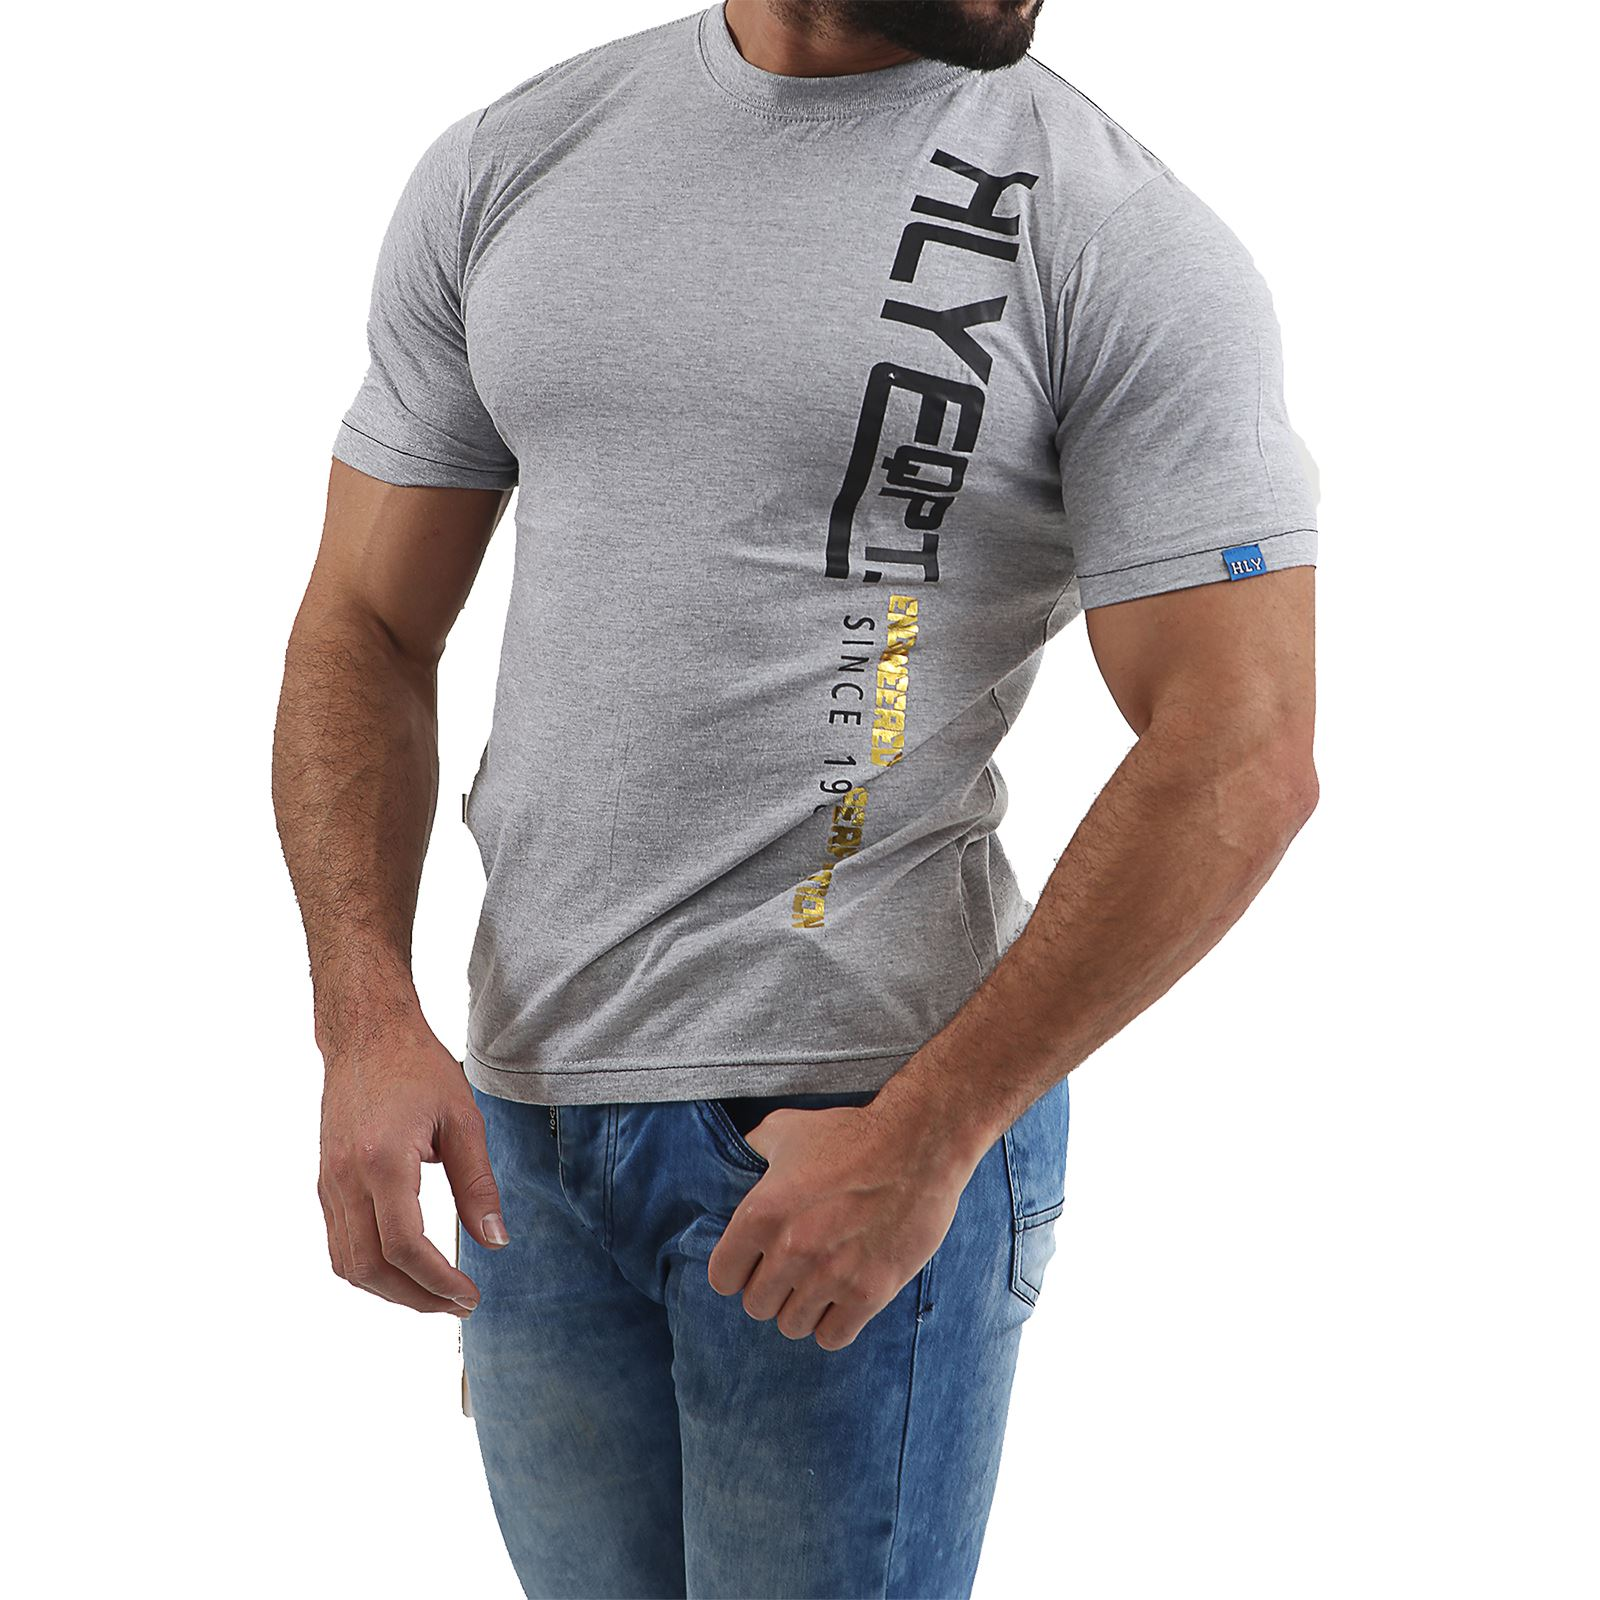 Mens-HLY-EQPT-Printed-T-Shirt-100-Cotton-Gym-Athletic-Training-Tee-Top-Summer thumbnail 8